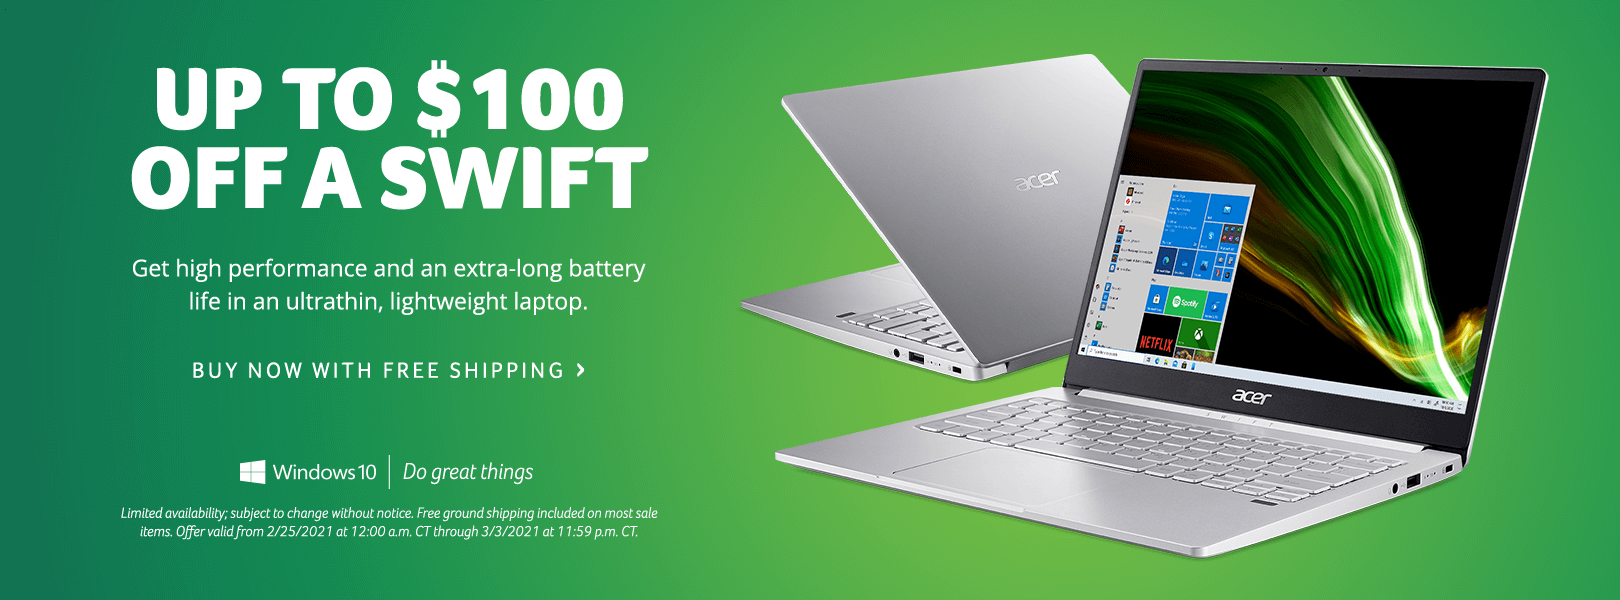 Save up to $100 on Swift Laptops